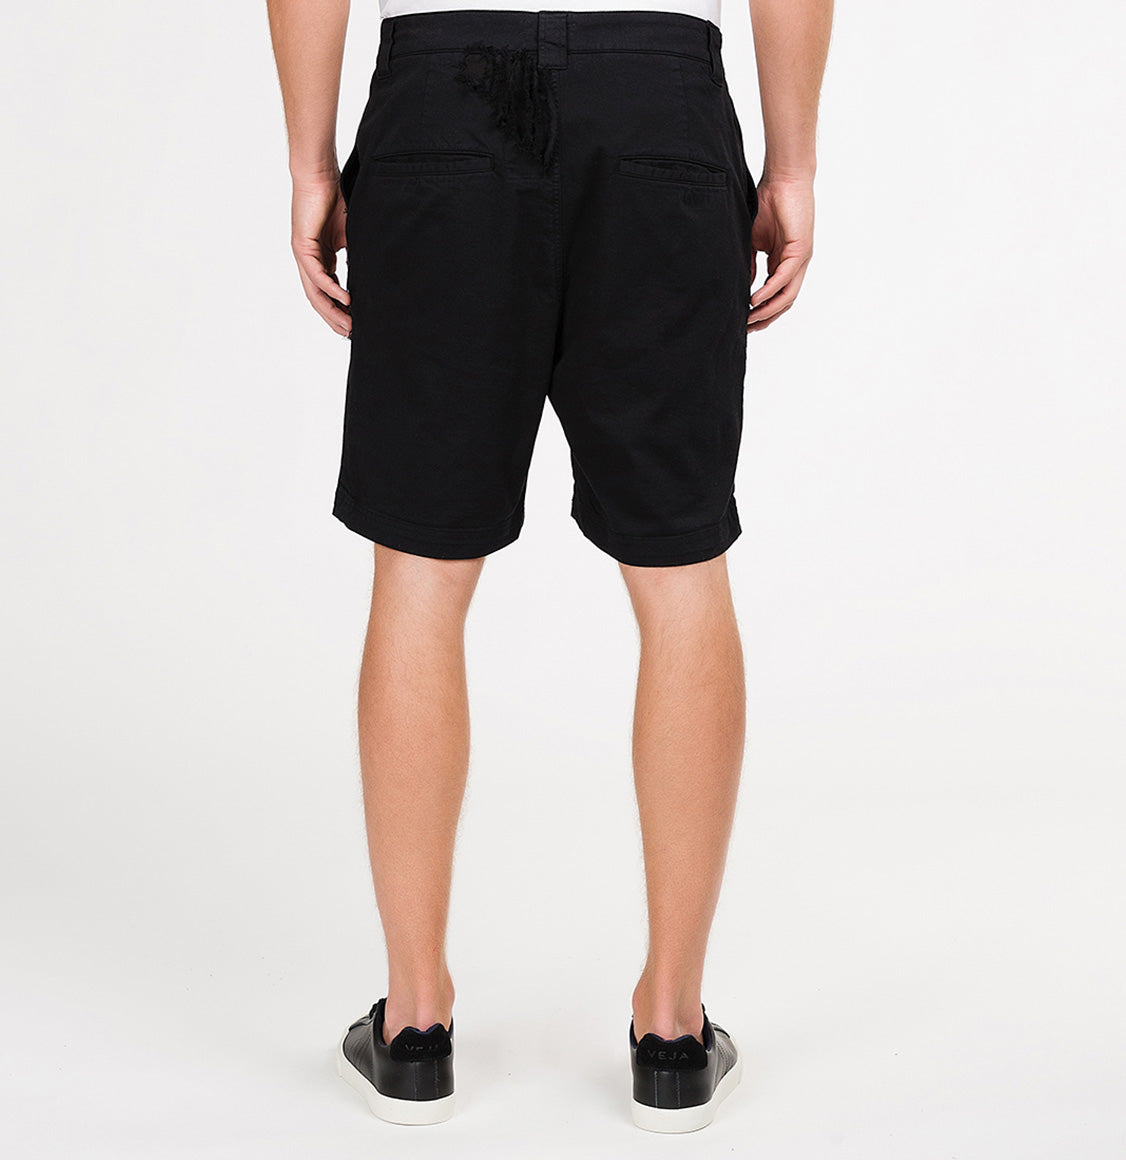 Distressed Straight Leg Washed Cotton Shorts Black | The Project Garments - B